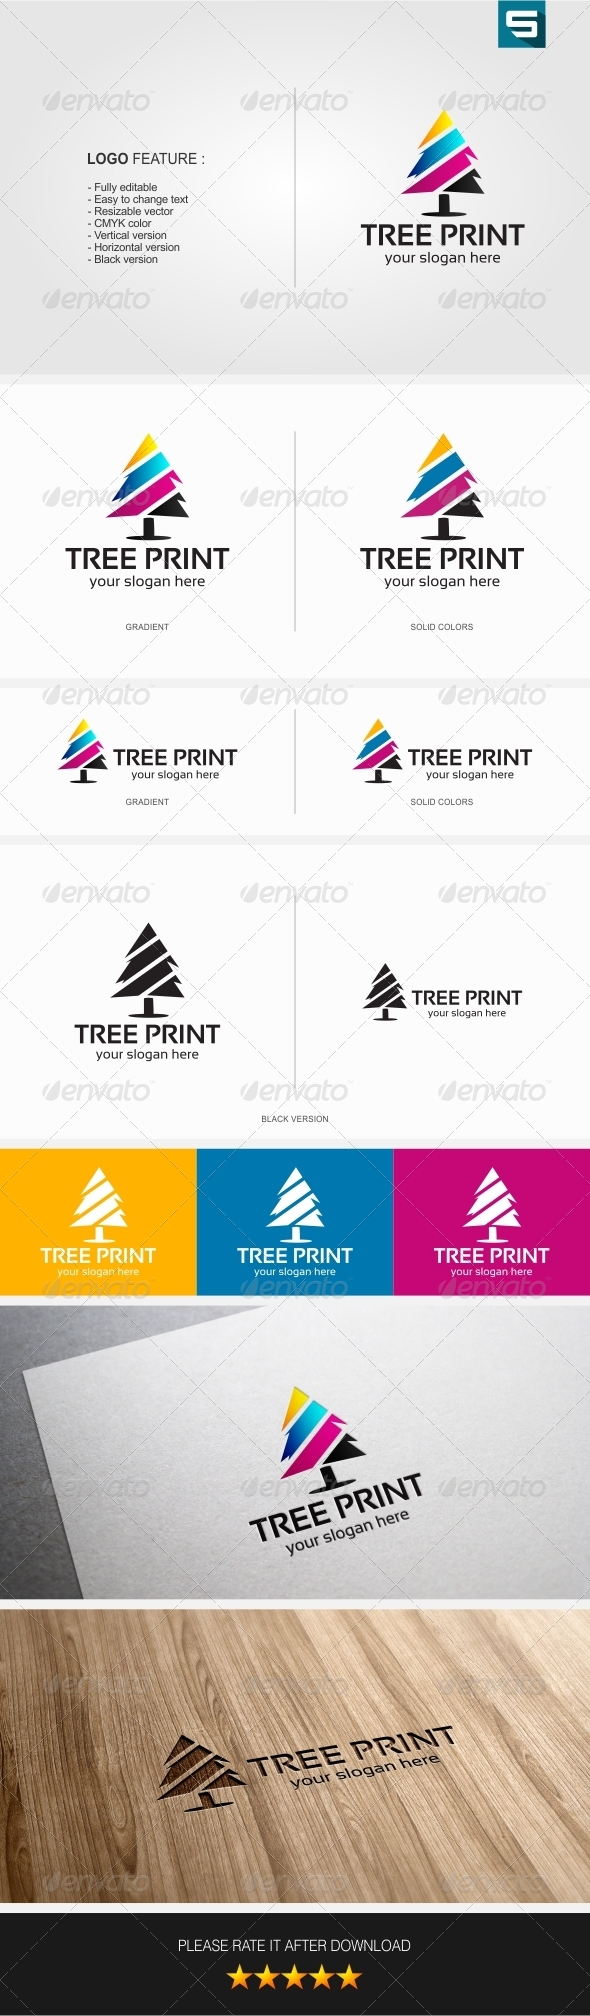 GraphicRiver Tree Print Logo 7752743